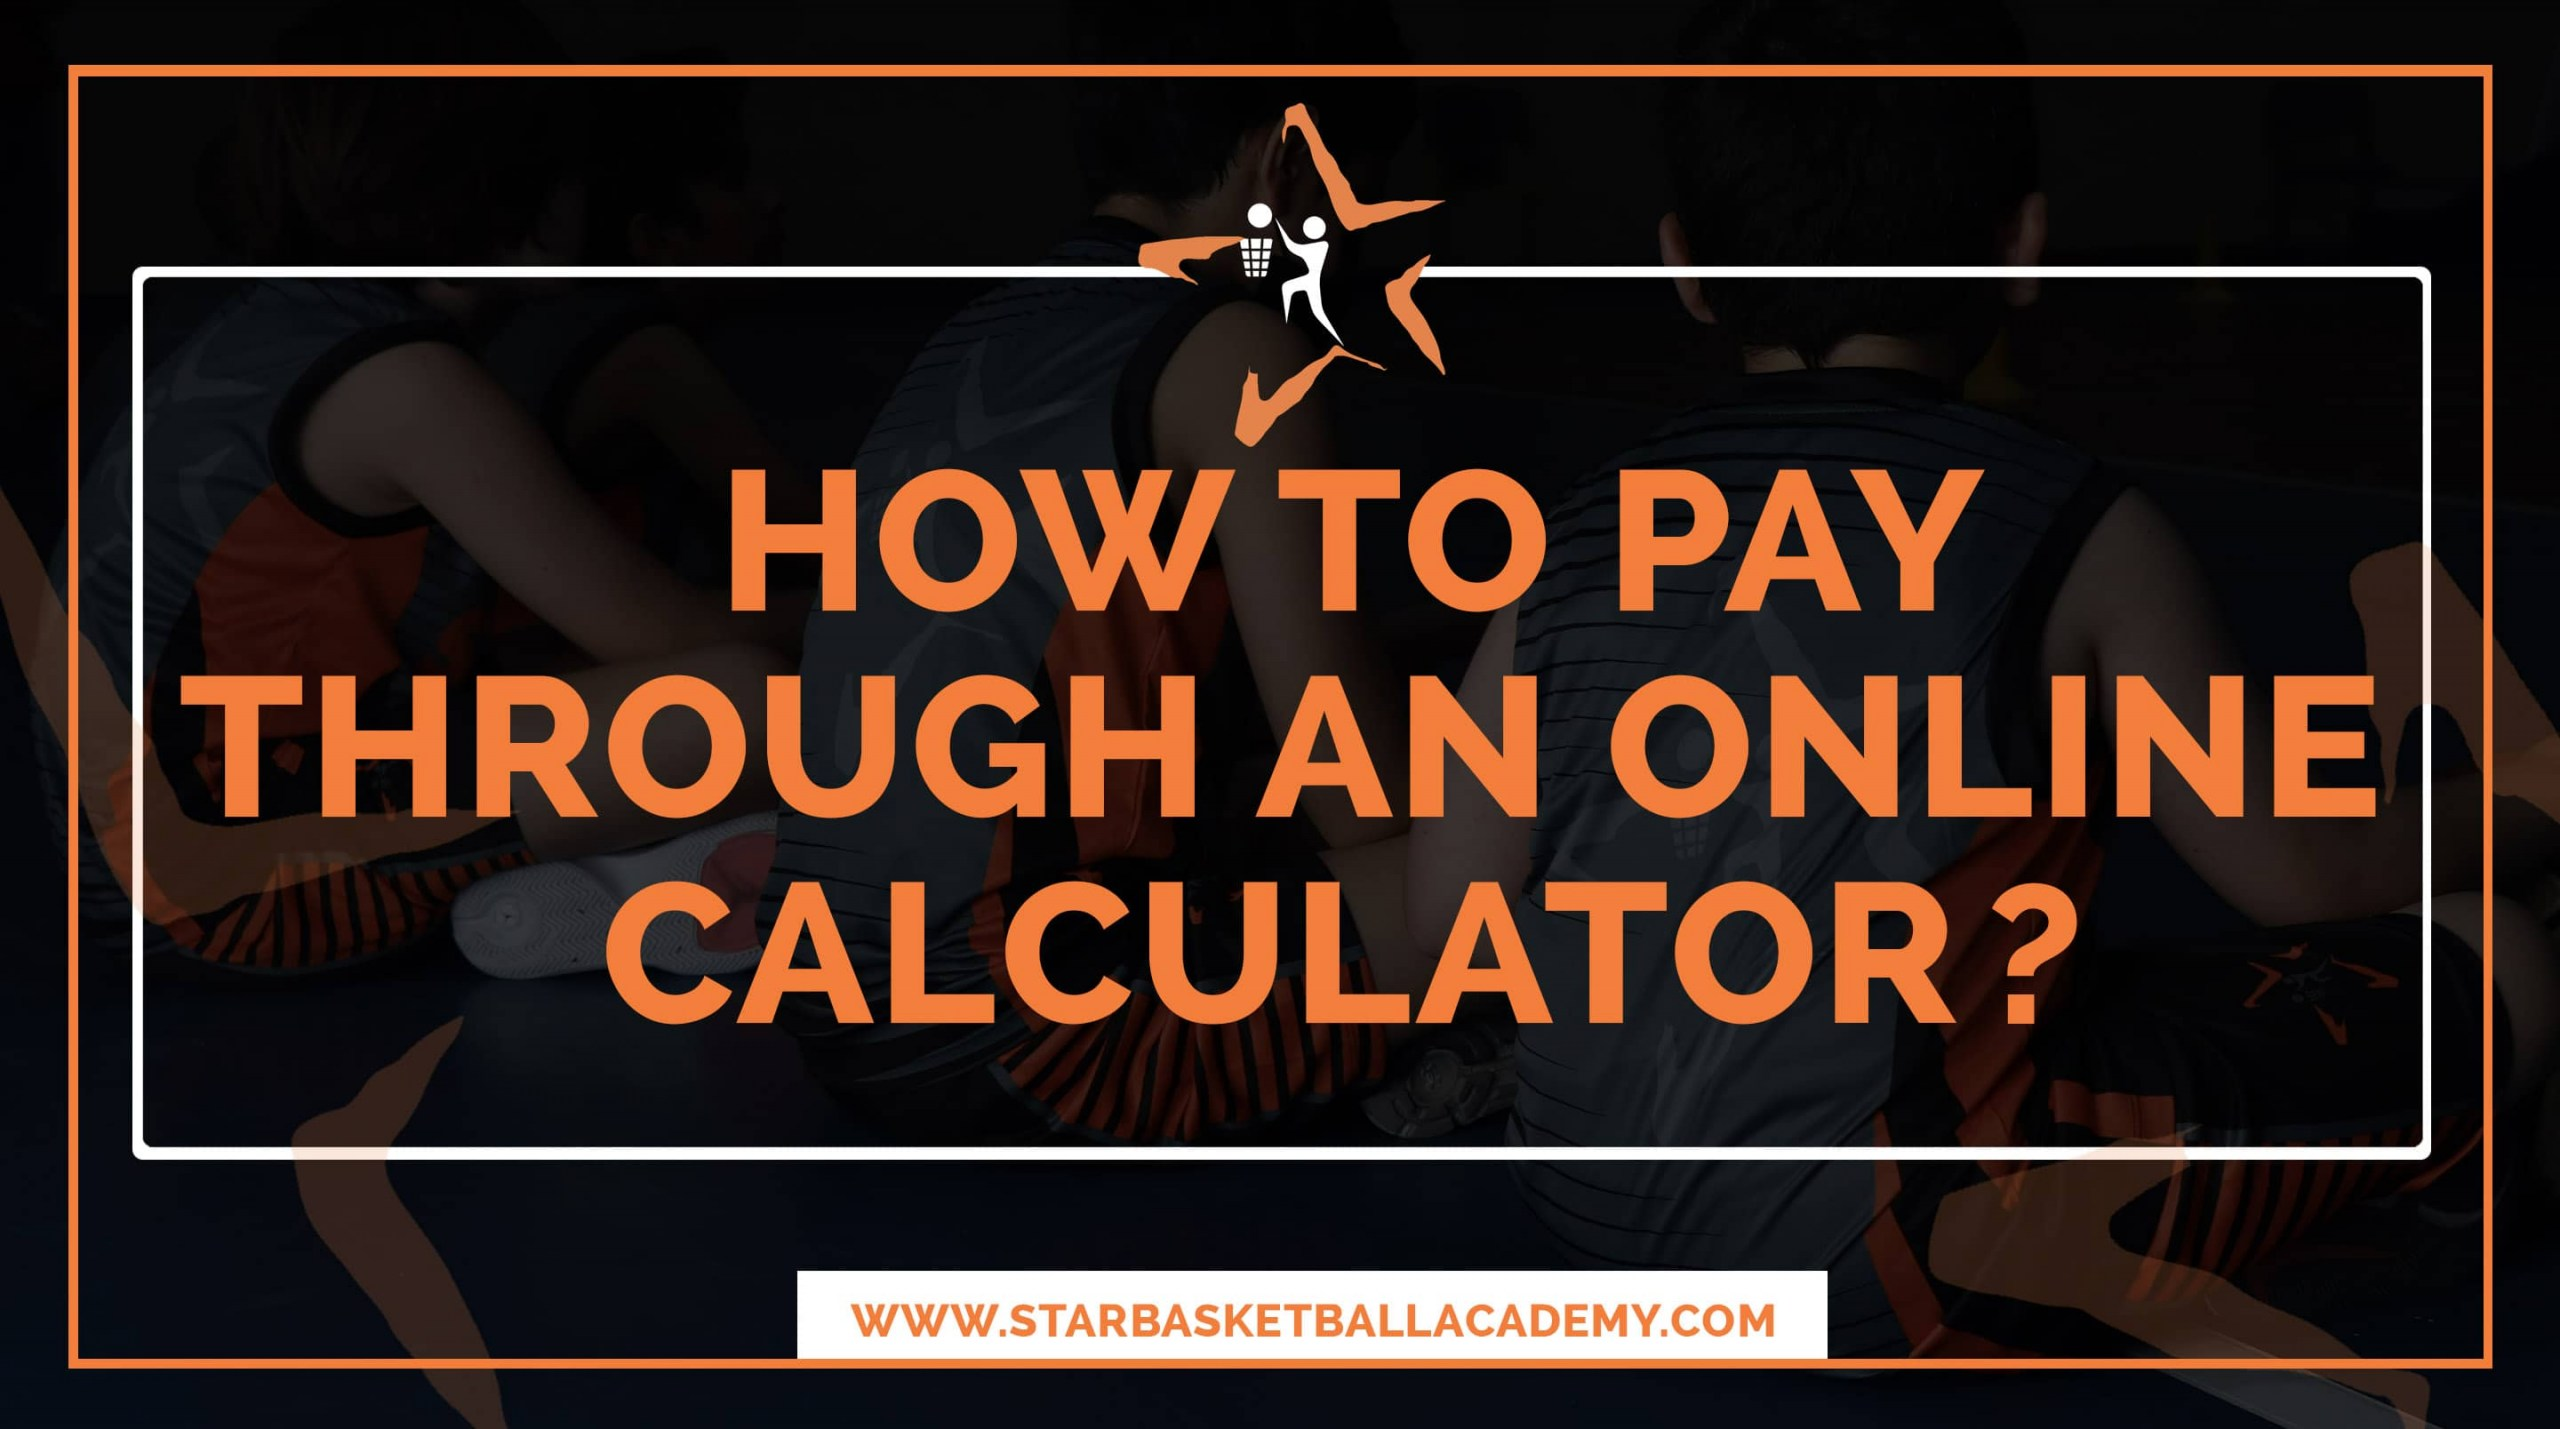 how to use online calculator to pay star basketball academy